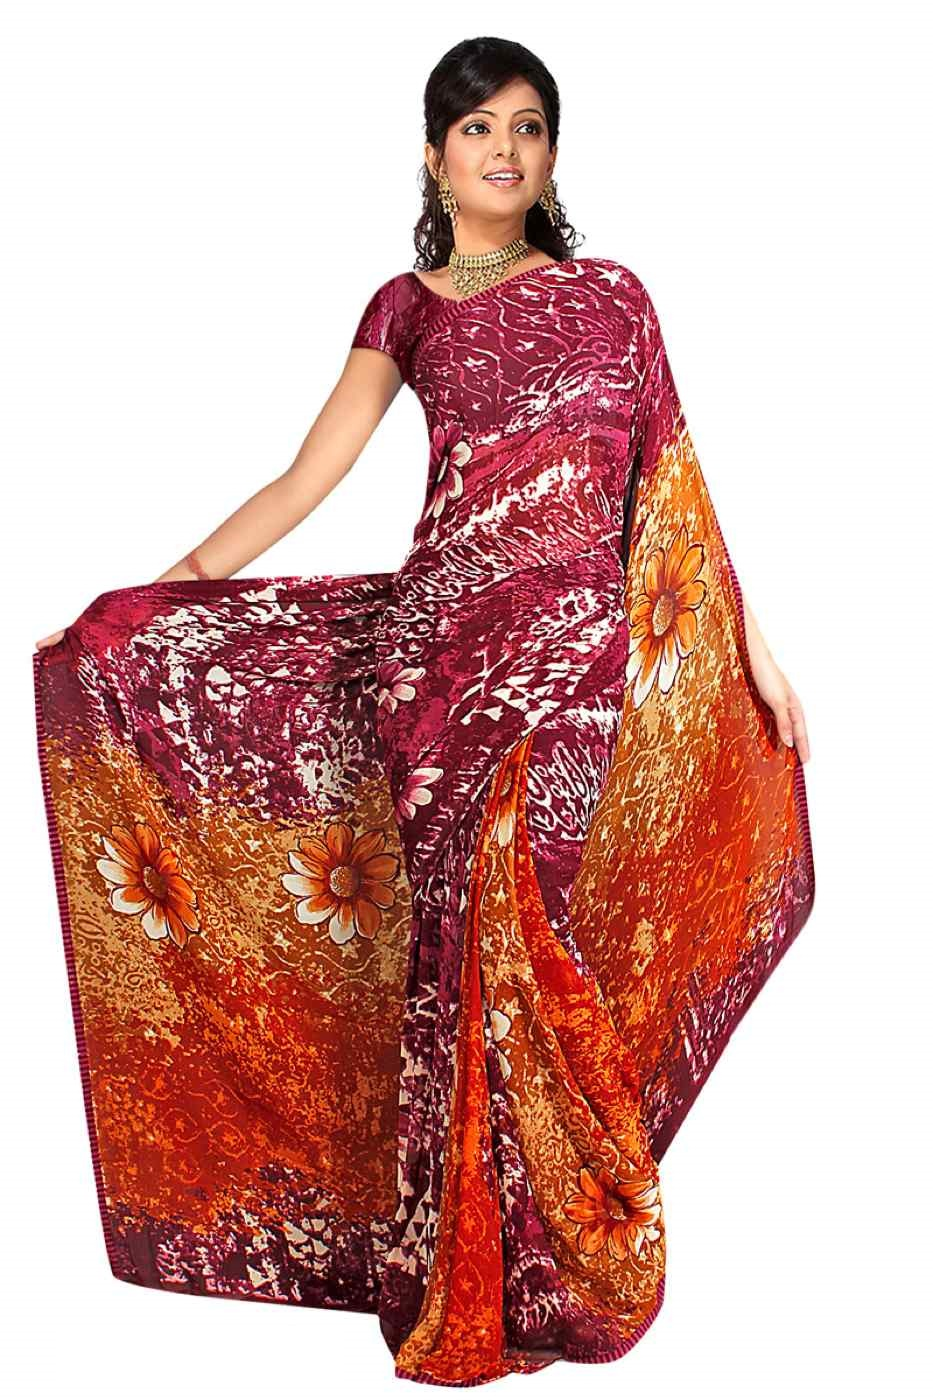 Disha Georgette Printed Casual Saree Sari Bellydance fabric